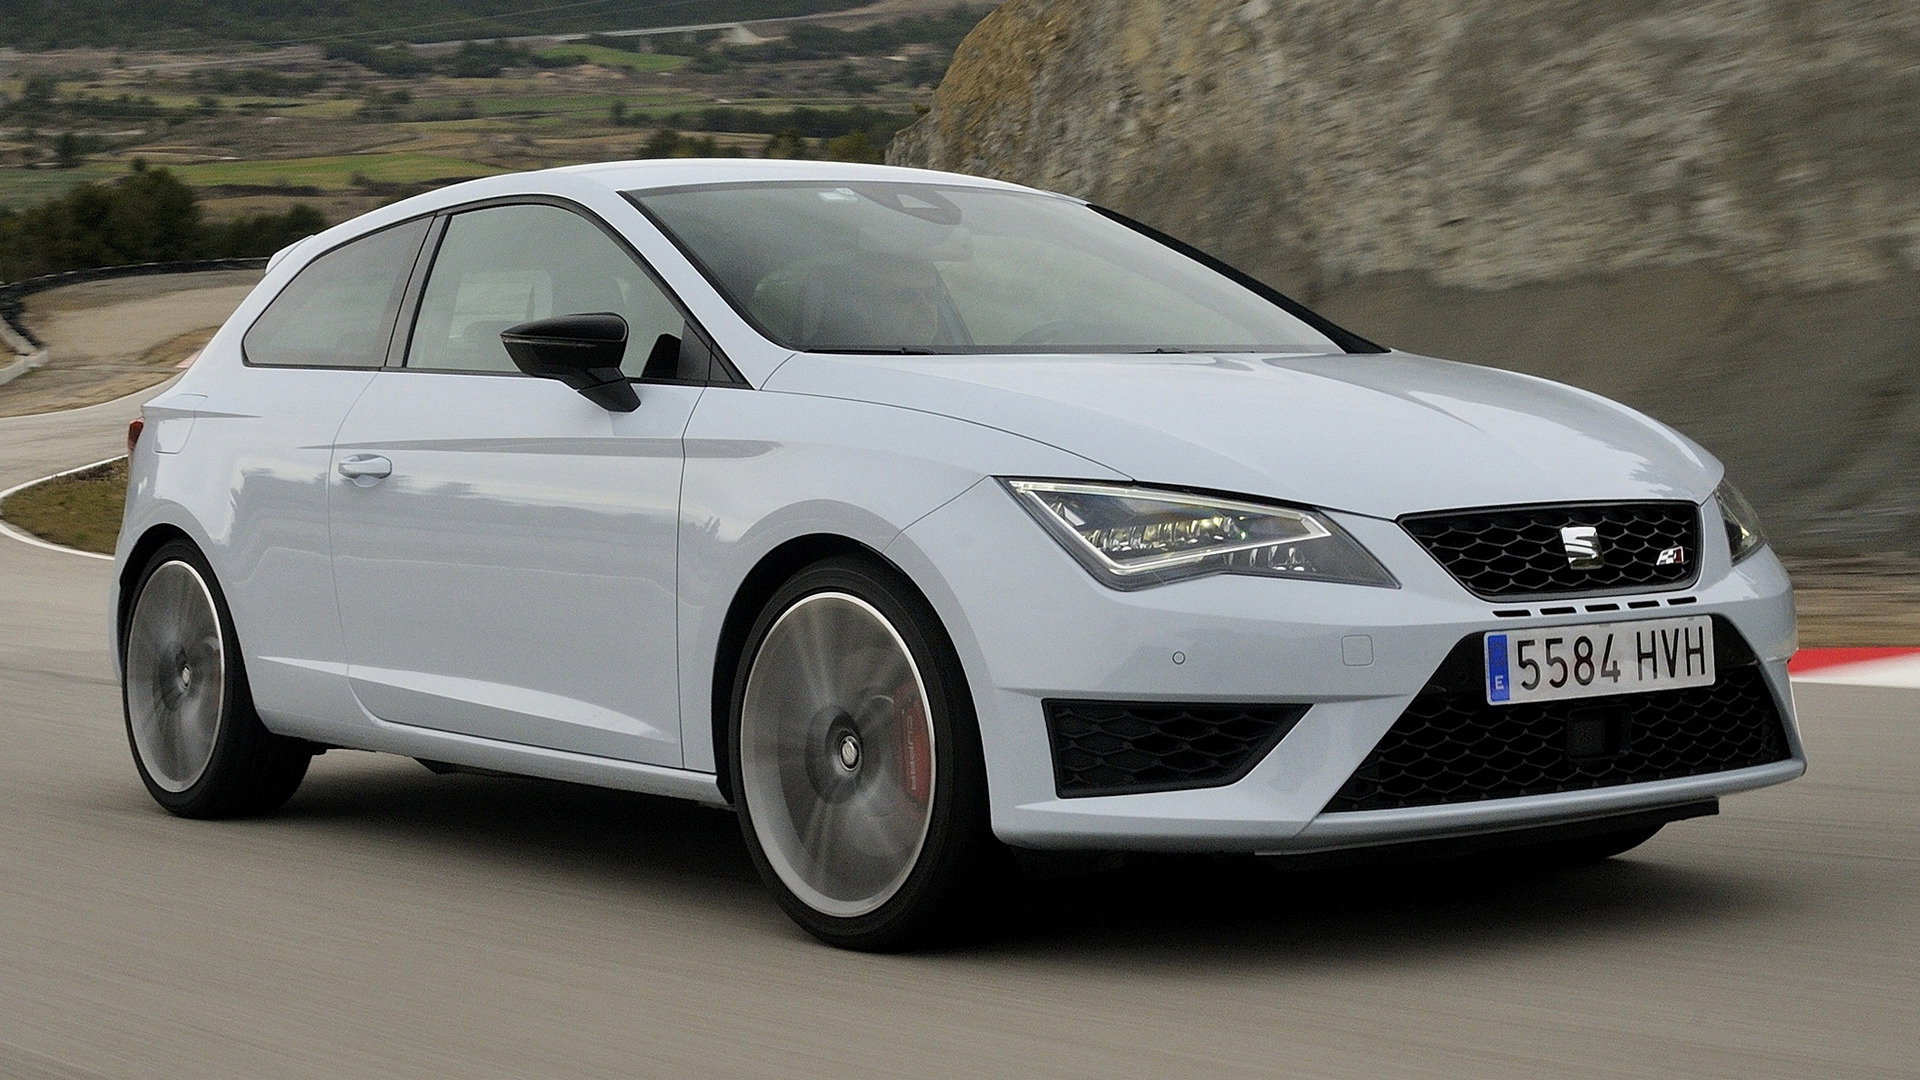 seat leon sc cupra 280 2014 wallpapers and hd images. Black Bedroom Furniture Sets. Home Design Ideas